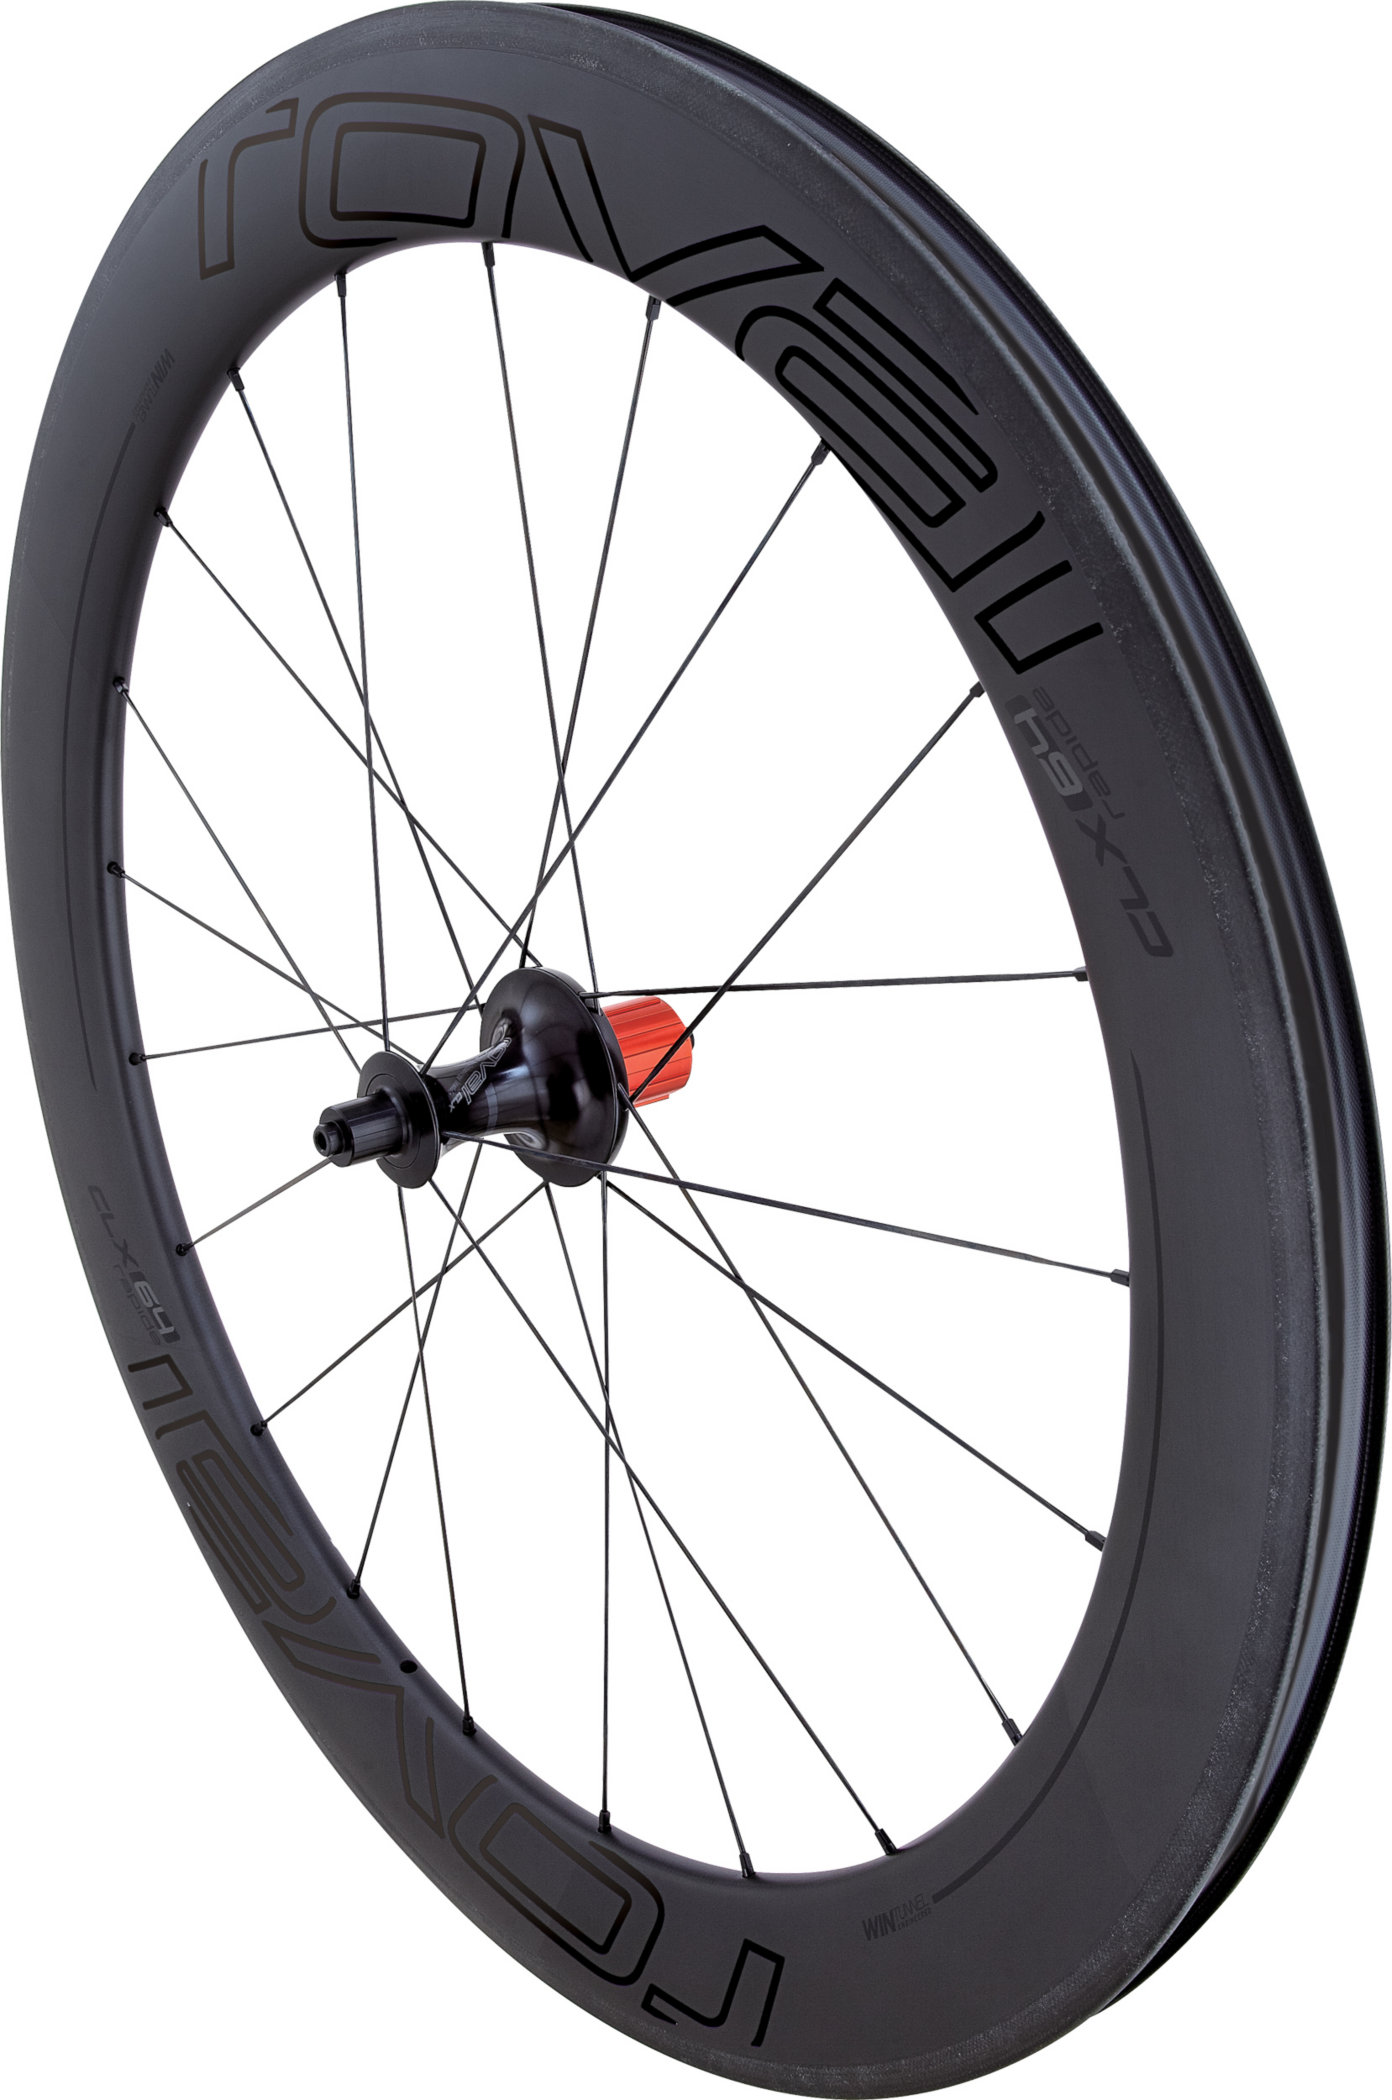 Specialized Roval CLX 64 – Rear Satin Carbon/Gloss Black 700c - Specialized Roval CLX 64 – Rear Satin Carbon/Gloss Black 700c